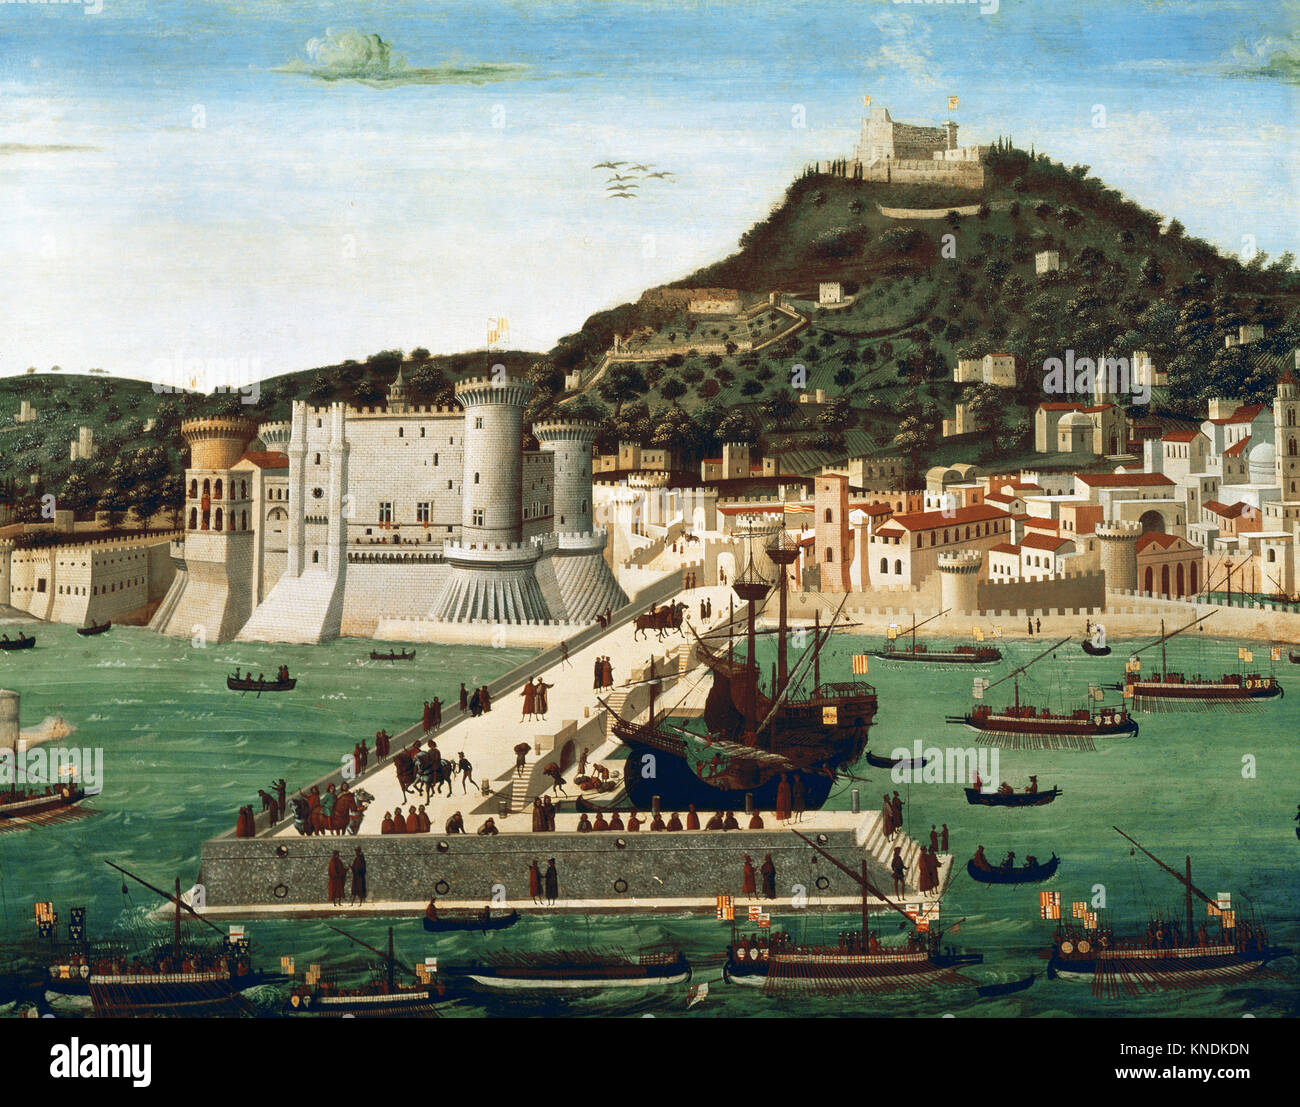 La Tavola Strozzi. View of Naples from 15th century. City and trading port. Attributed by Francesco Rosselli, 1472. - Stock Image